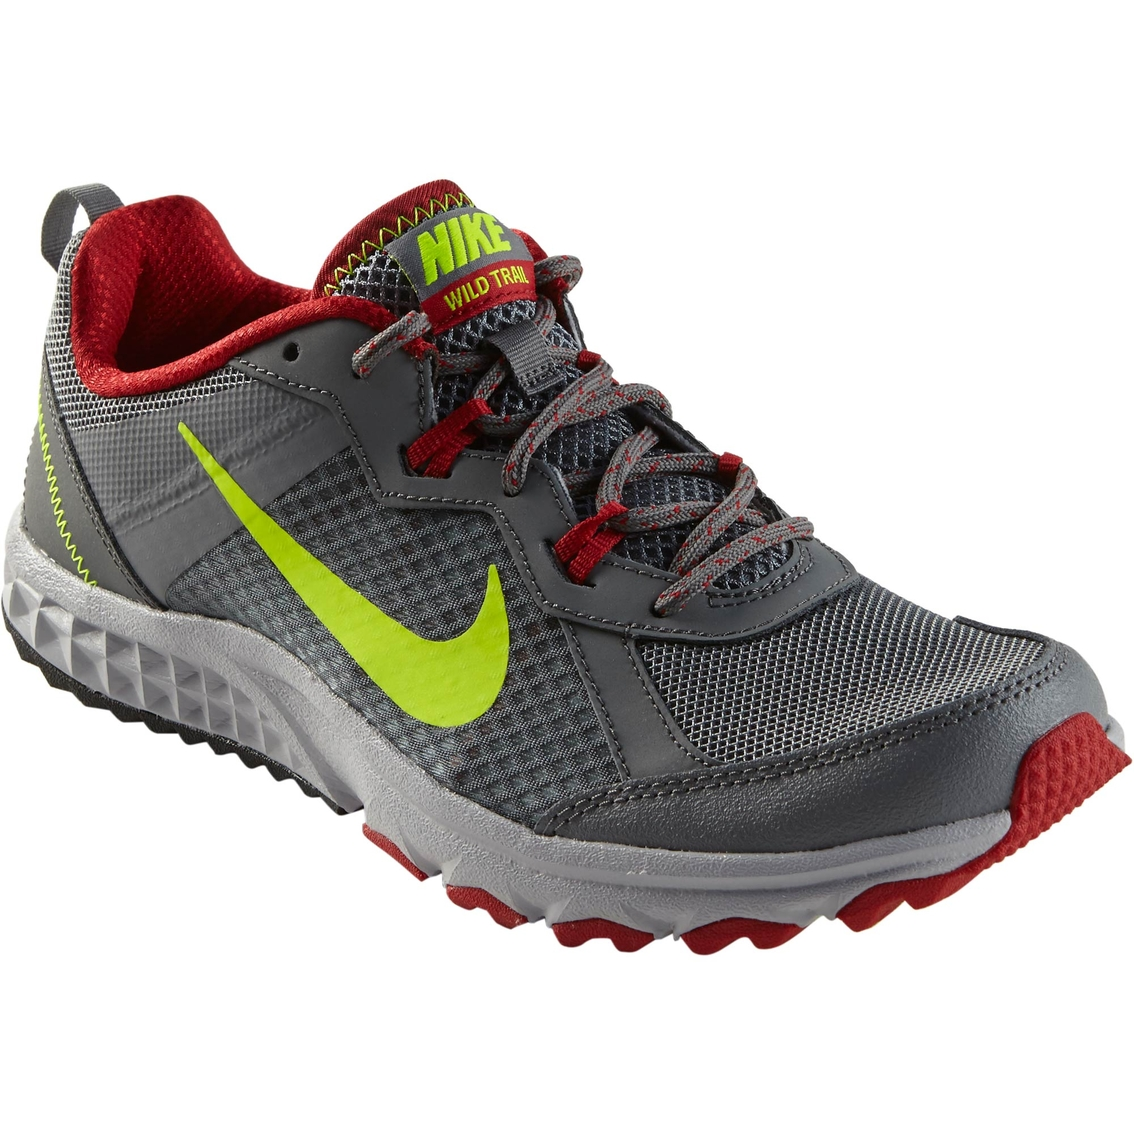 nike trail running shoes fwum UFBRWSQ